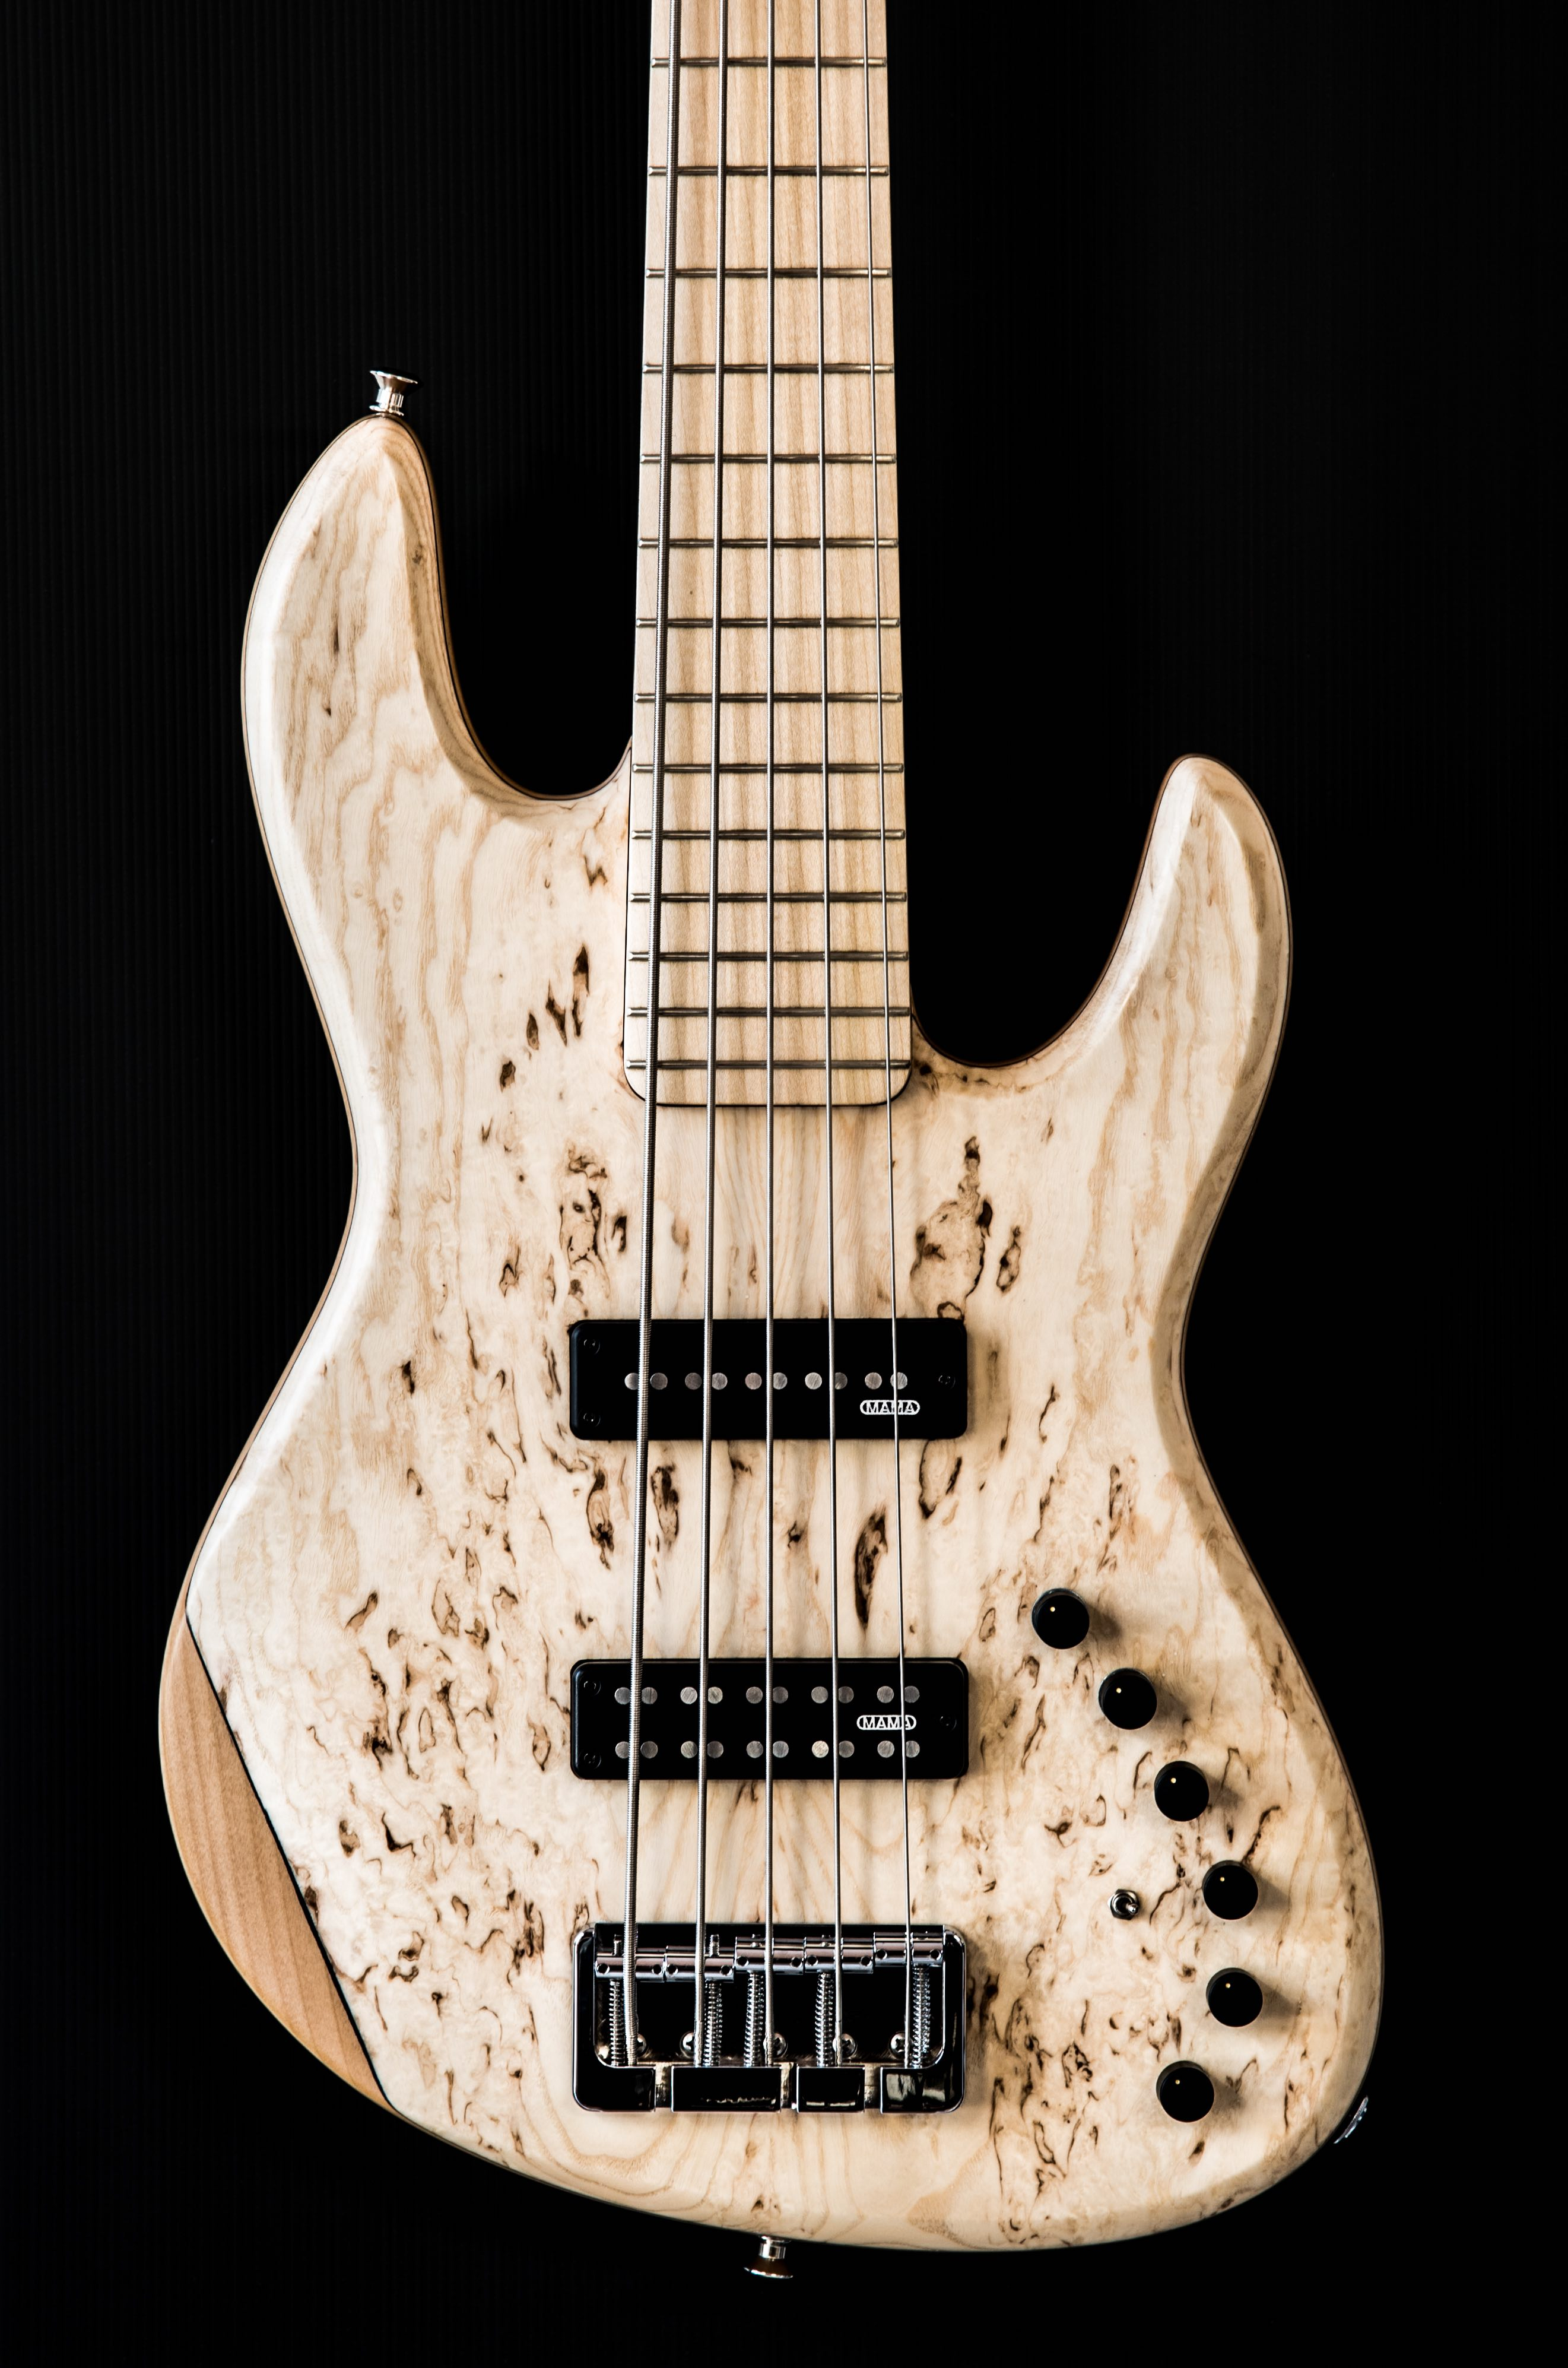 You are currently viewing Polaris deluxe 5 strings ash burl top